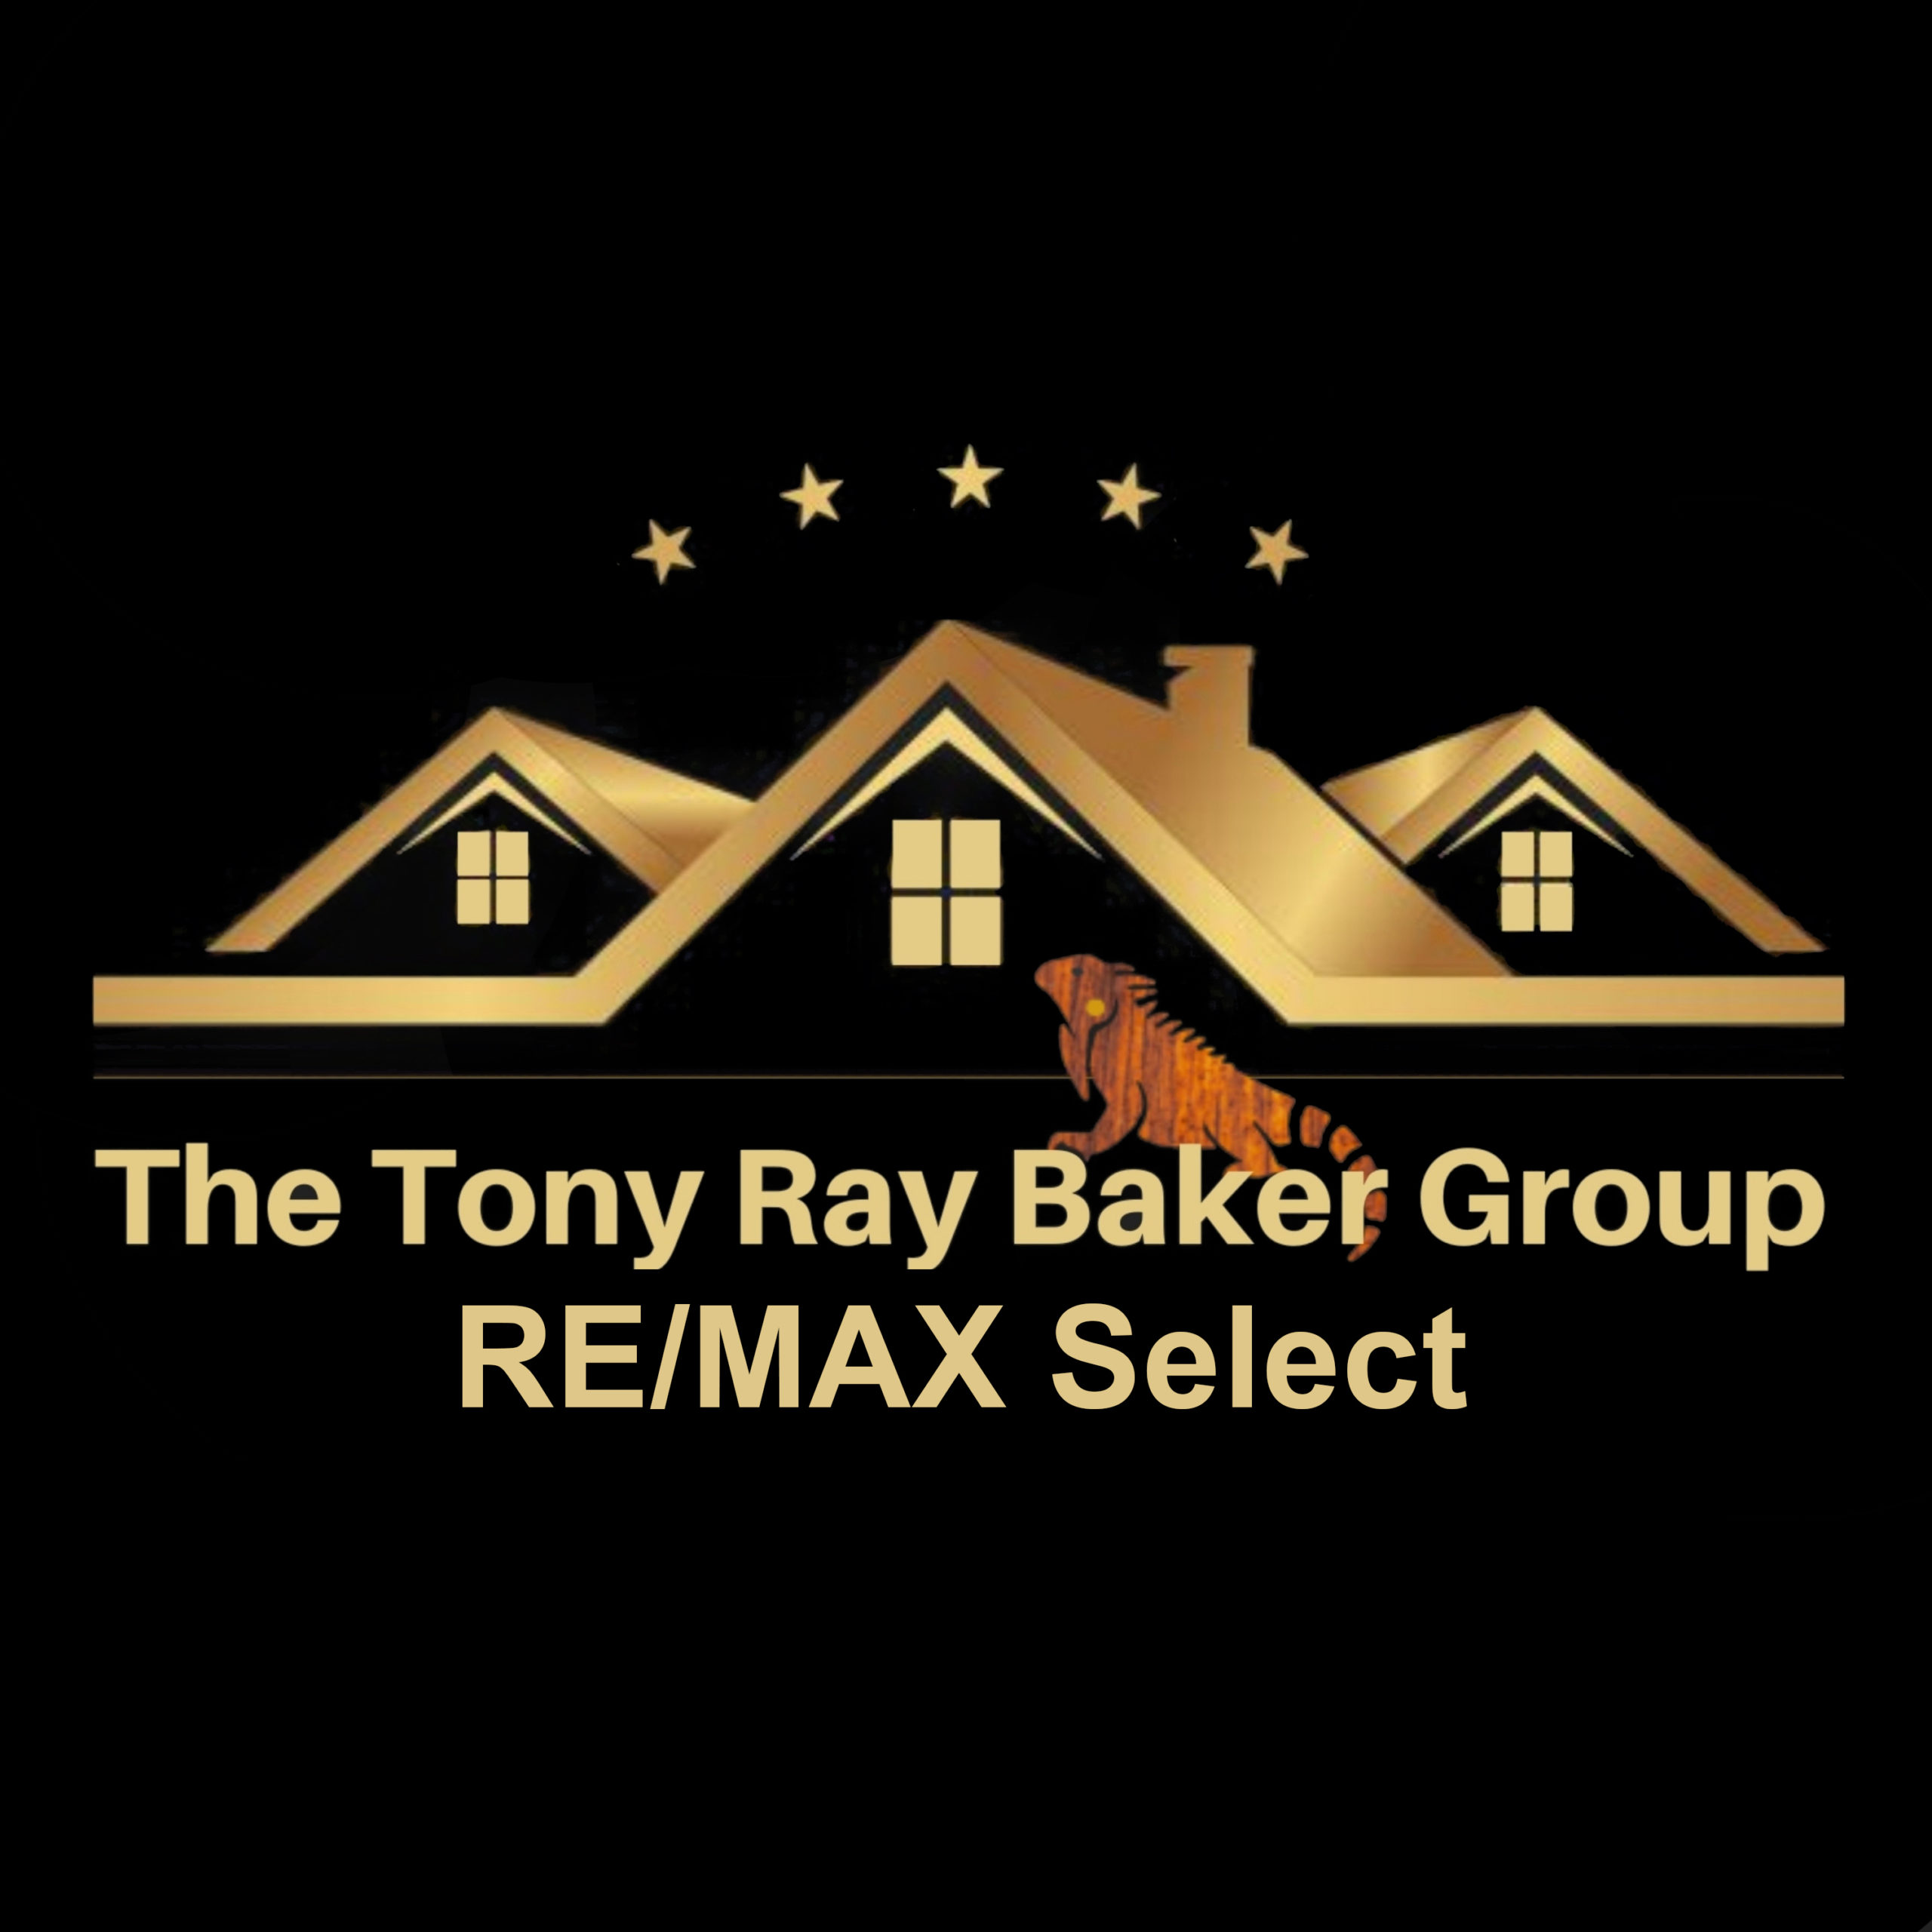 Tucson REALTOR RE/MAX REMAX Best Real Estate